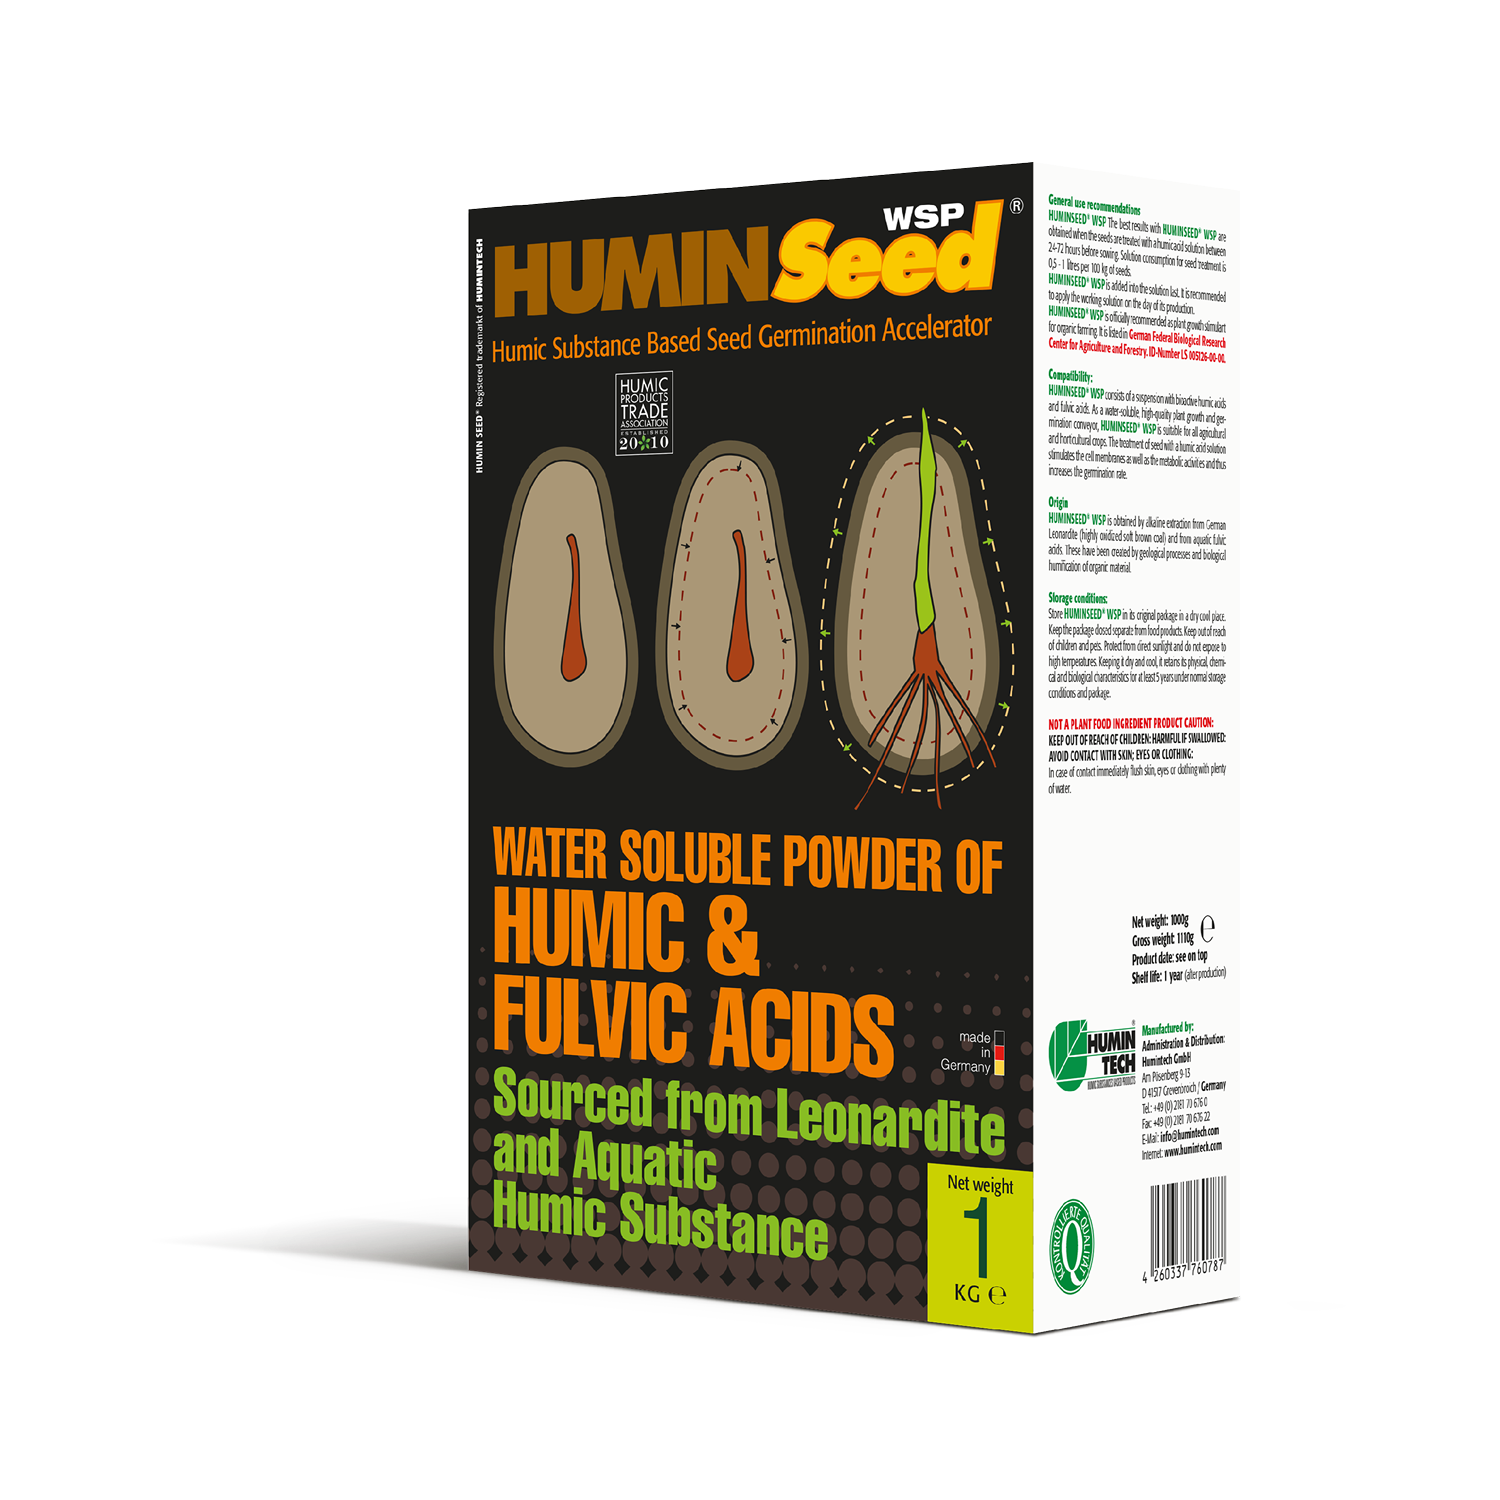 HUMINTECH HUMINSEED WSP is a Humic Based Seed Germination Accelerator box